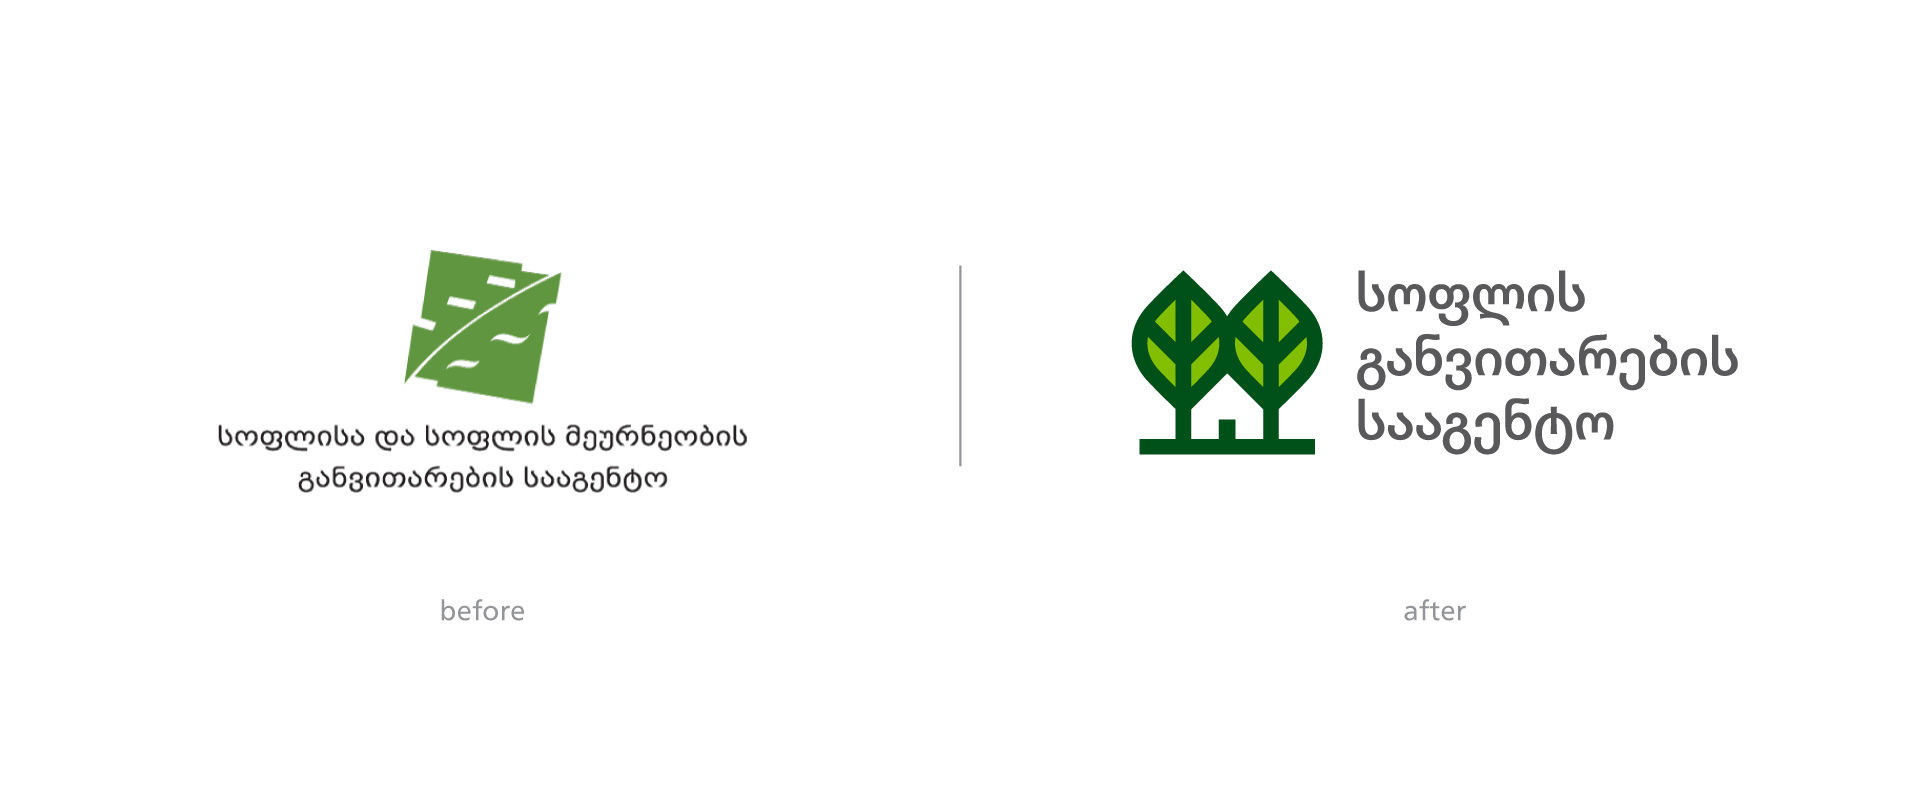 Logo_before_after_1920_q80_01